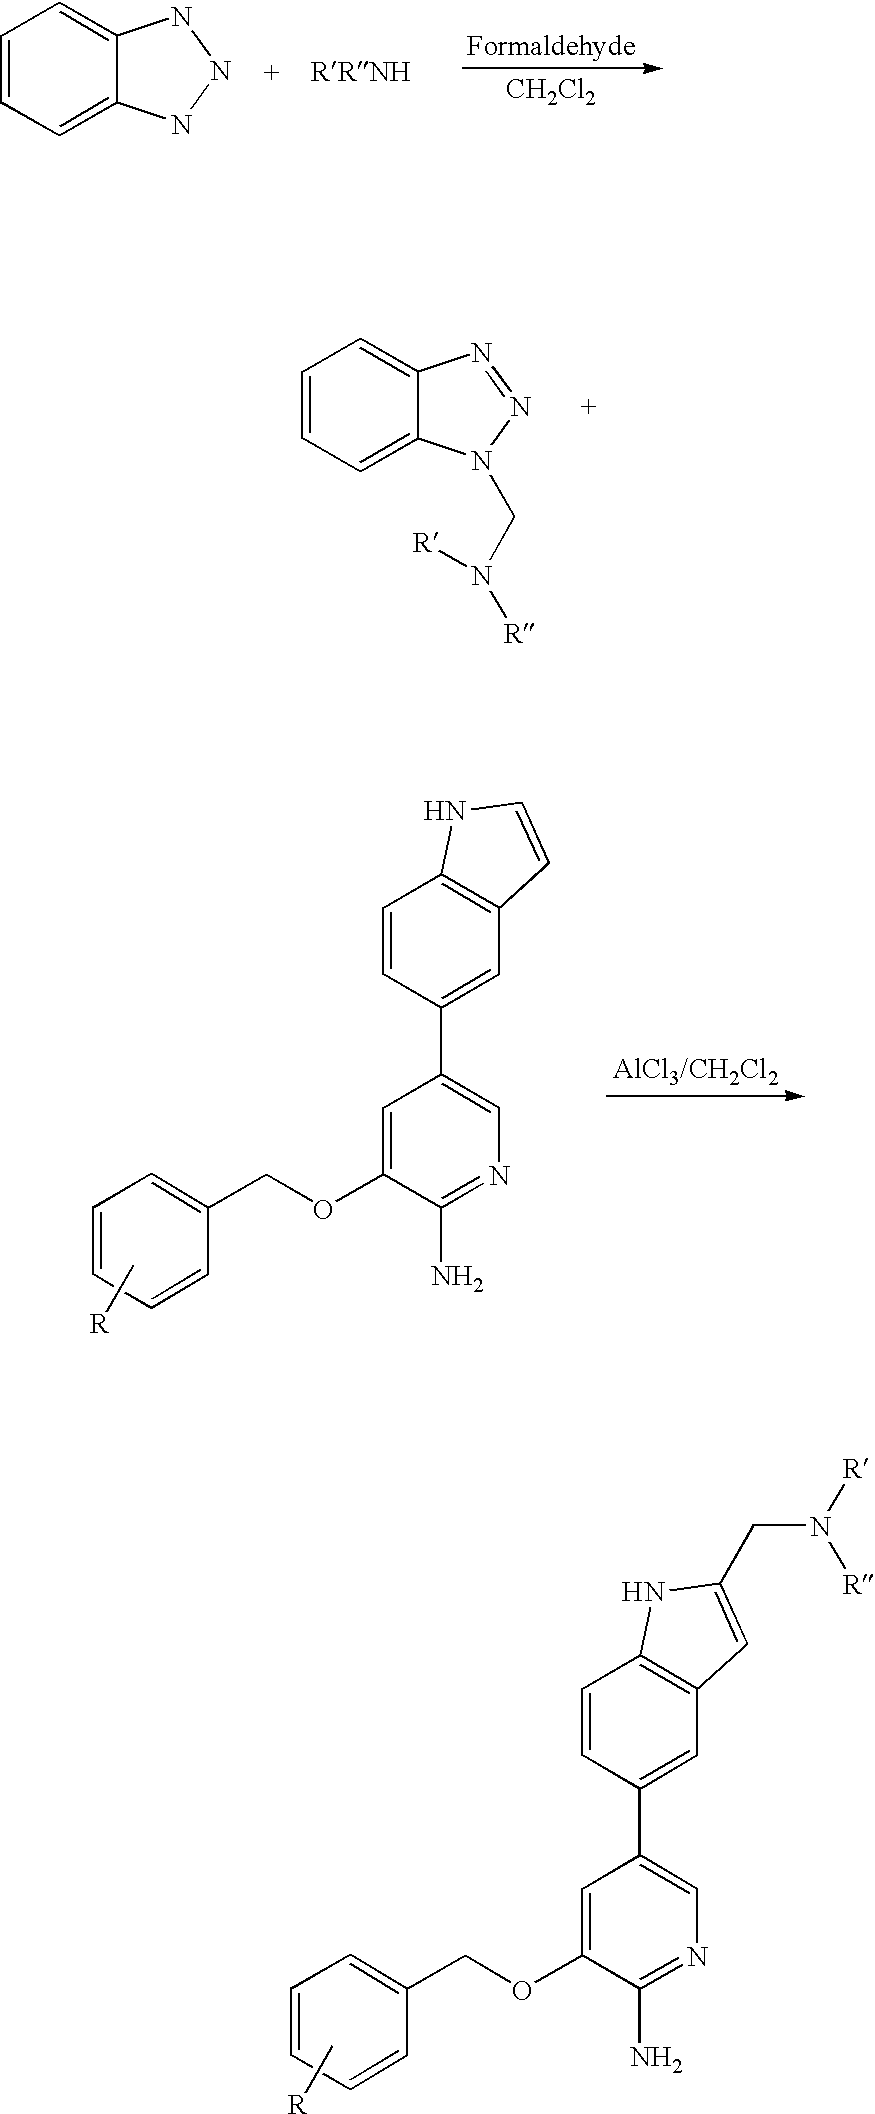 Us7230098b2 Aminoheteroaryl Compounds As Protein Kinase Inhibitors Wiring Diagram Bolens G194 Figure Us07230098 20070612 C00020